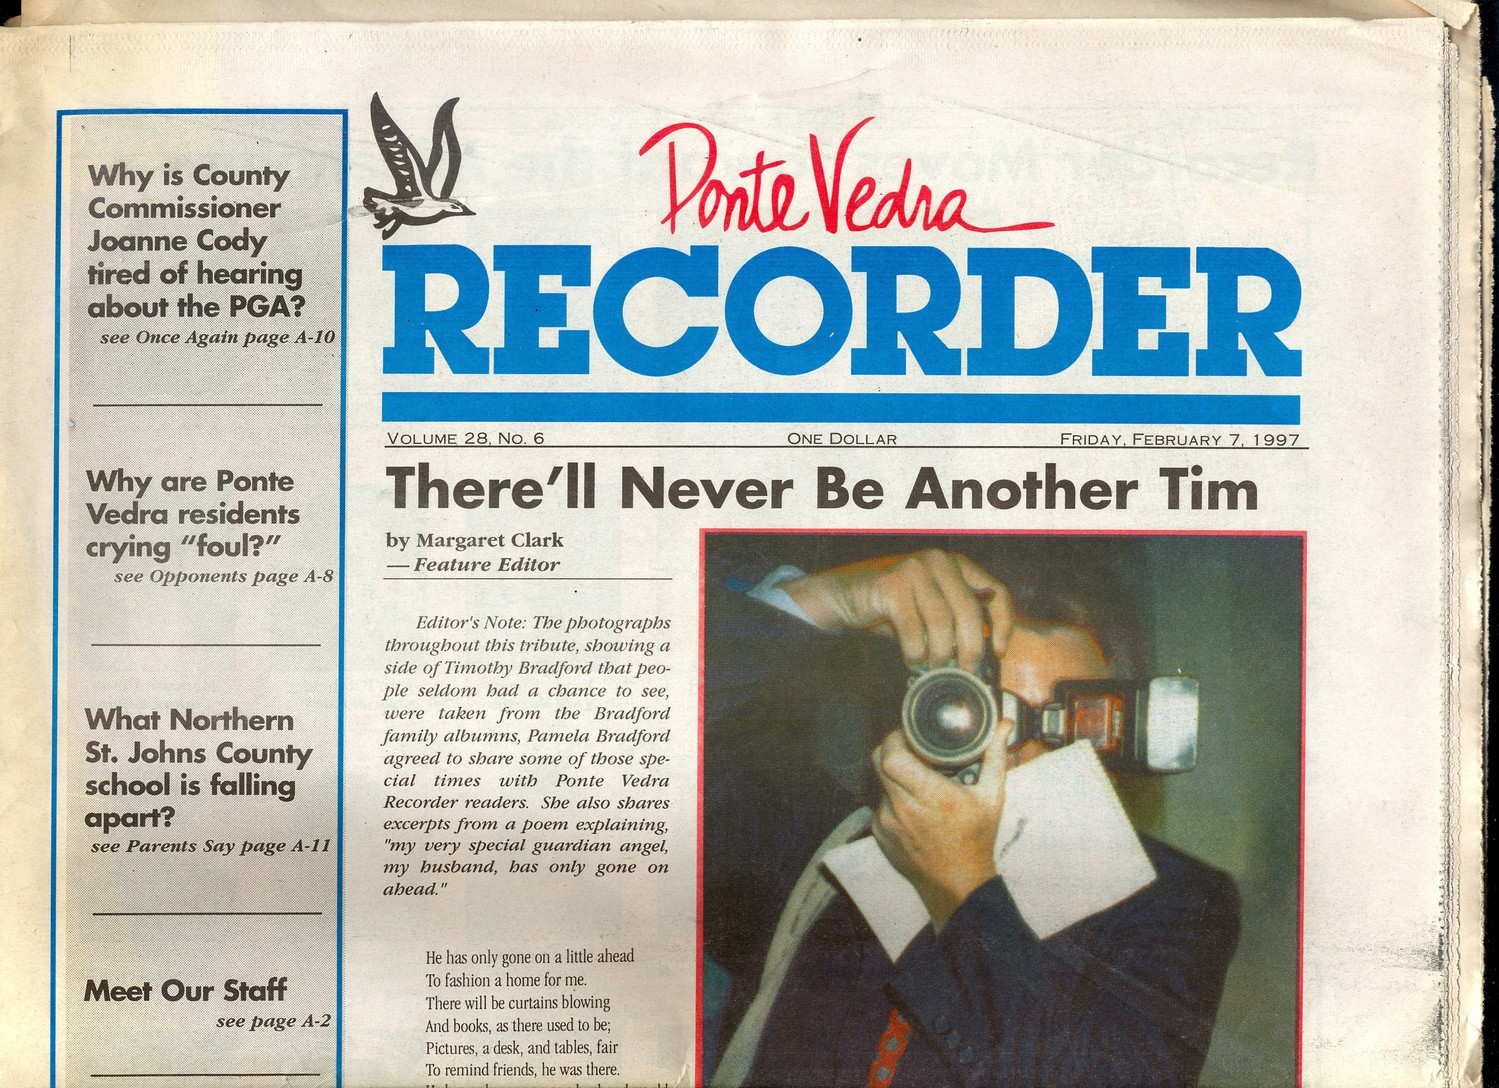 A 1997 tribute on former Ponte Vedra Recorder publisher Tim Bradford.